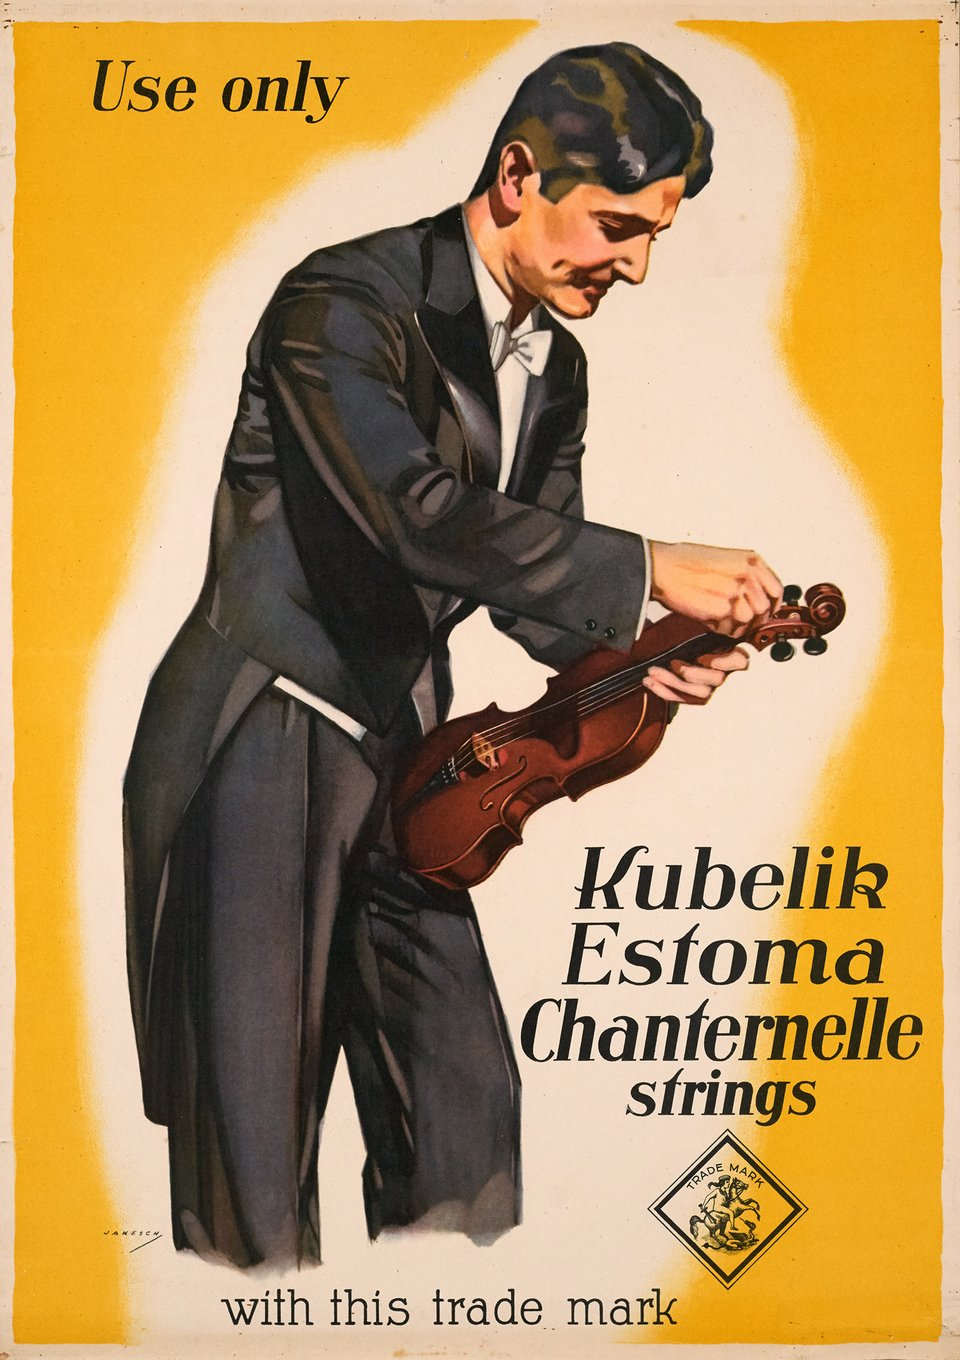 Use only Kubelik Estoma Chanternelle strings – Vintage poster – JAKESCH – 1935